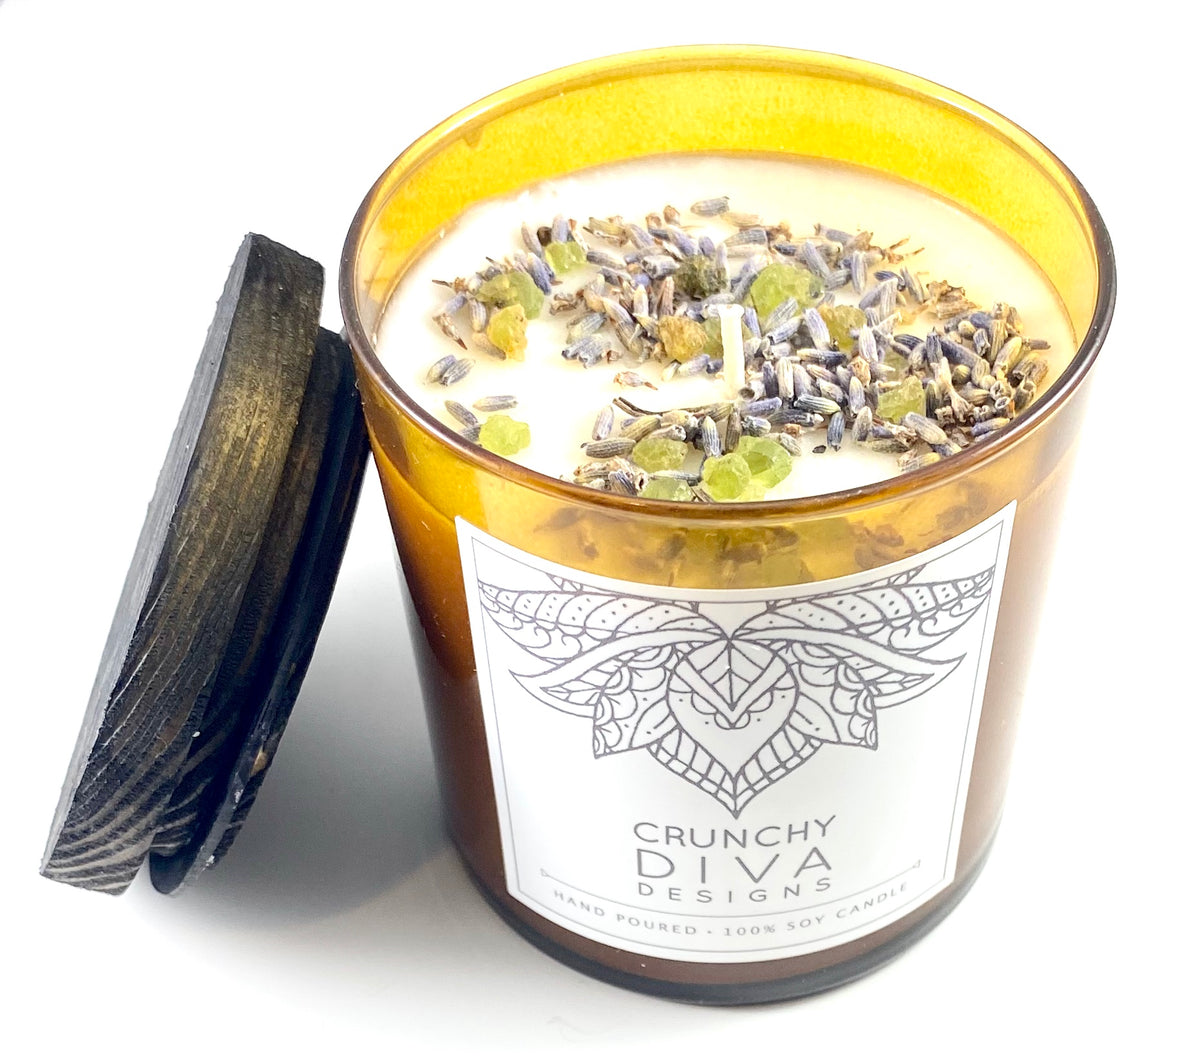 Crunchy Diva Designs Soy Candles - Large